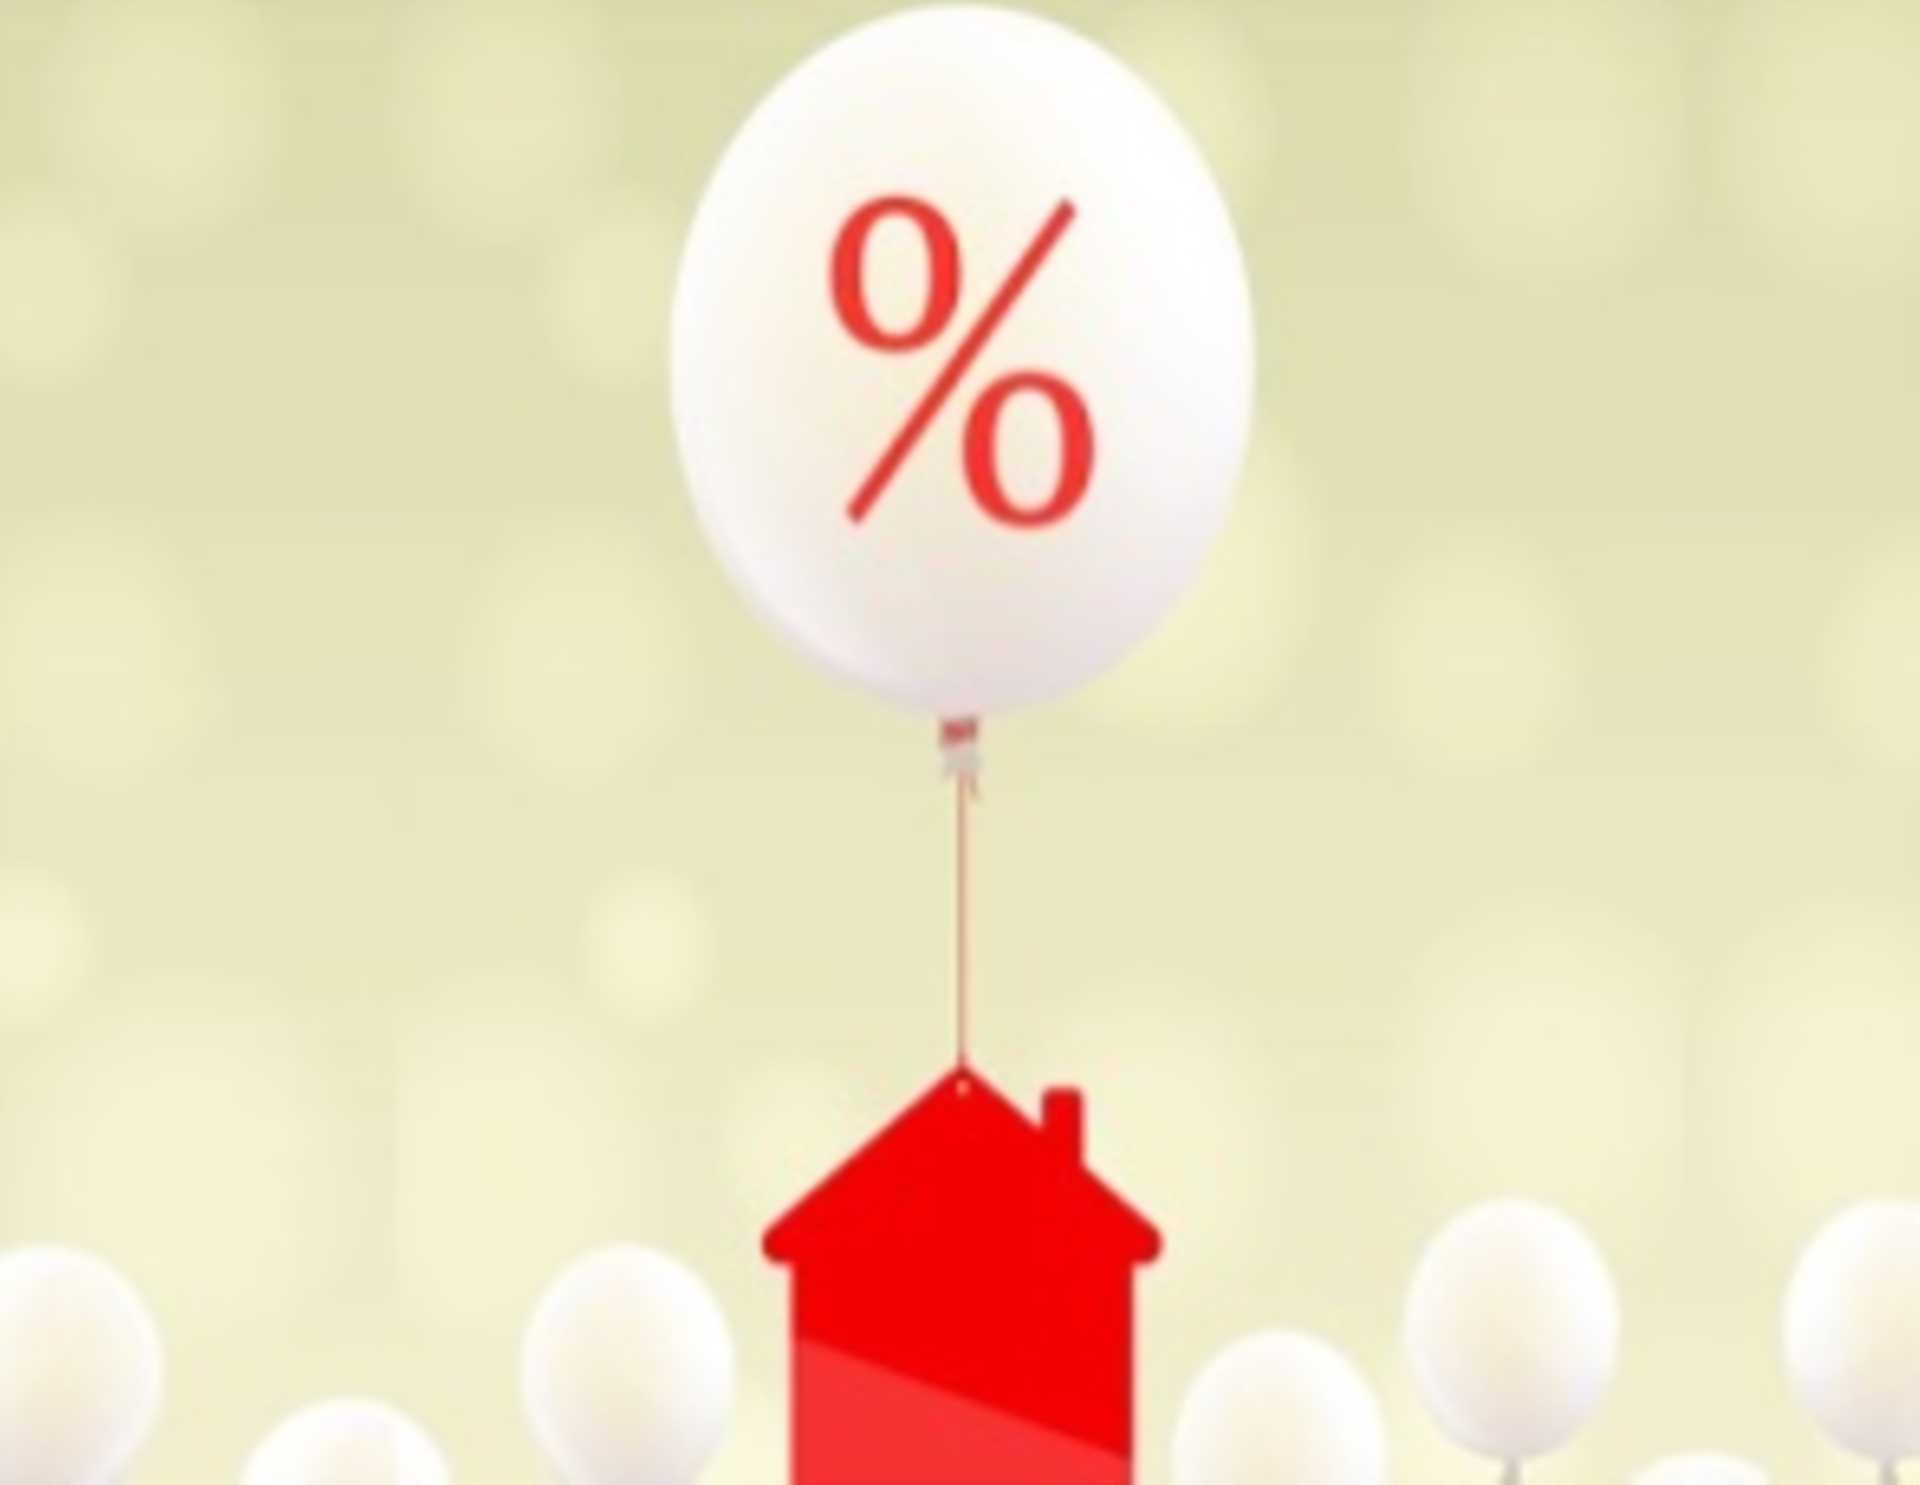 Interest rates set to rise - How will this affect the Marylebone property market?